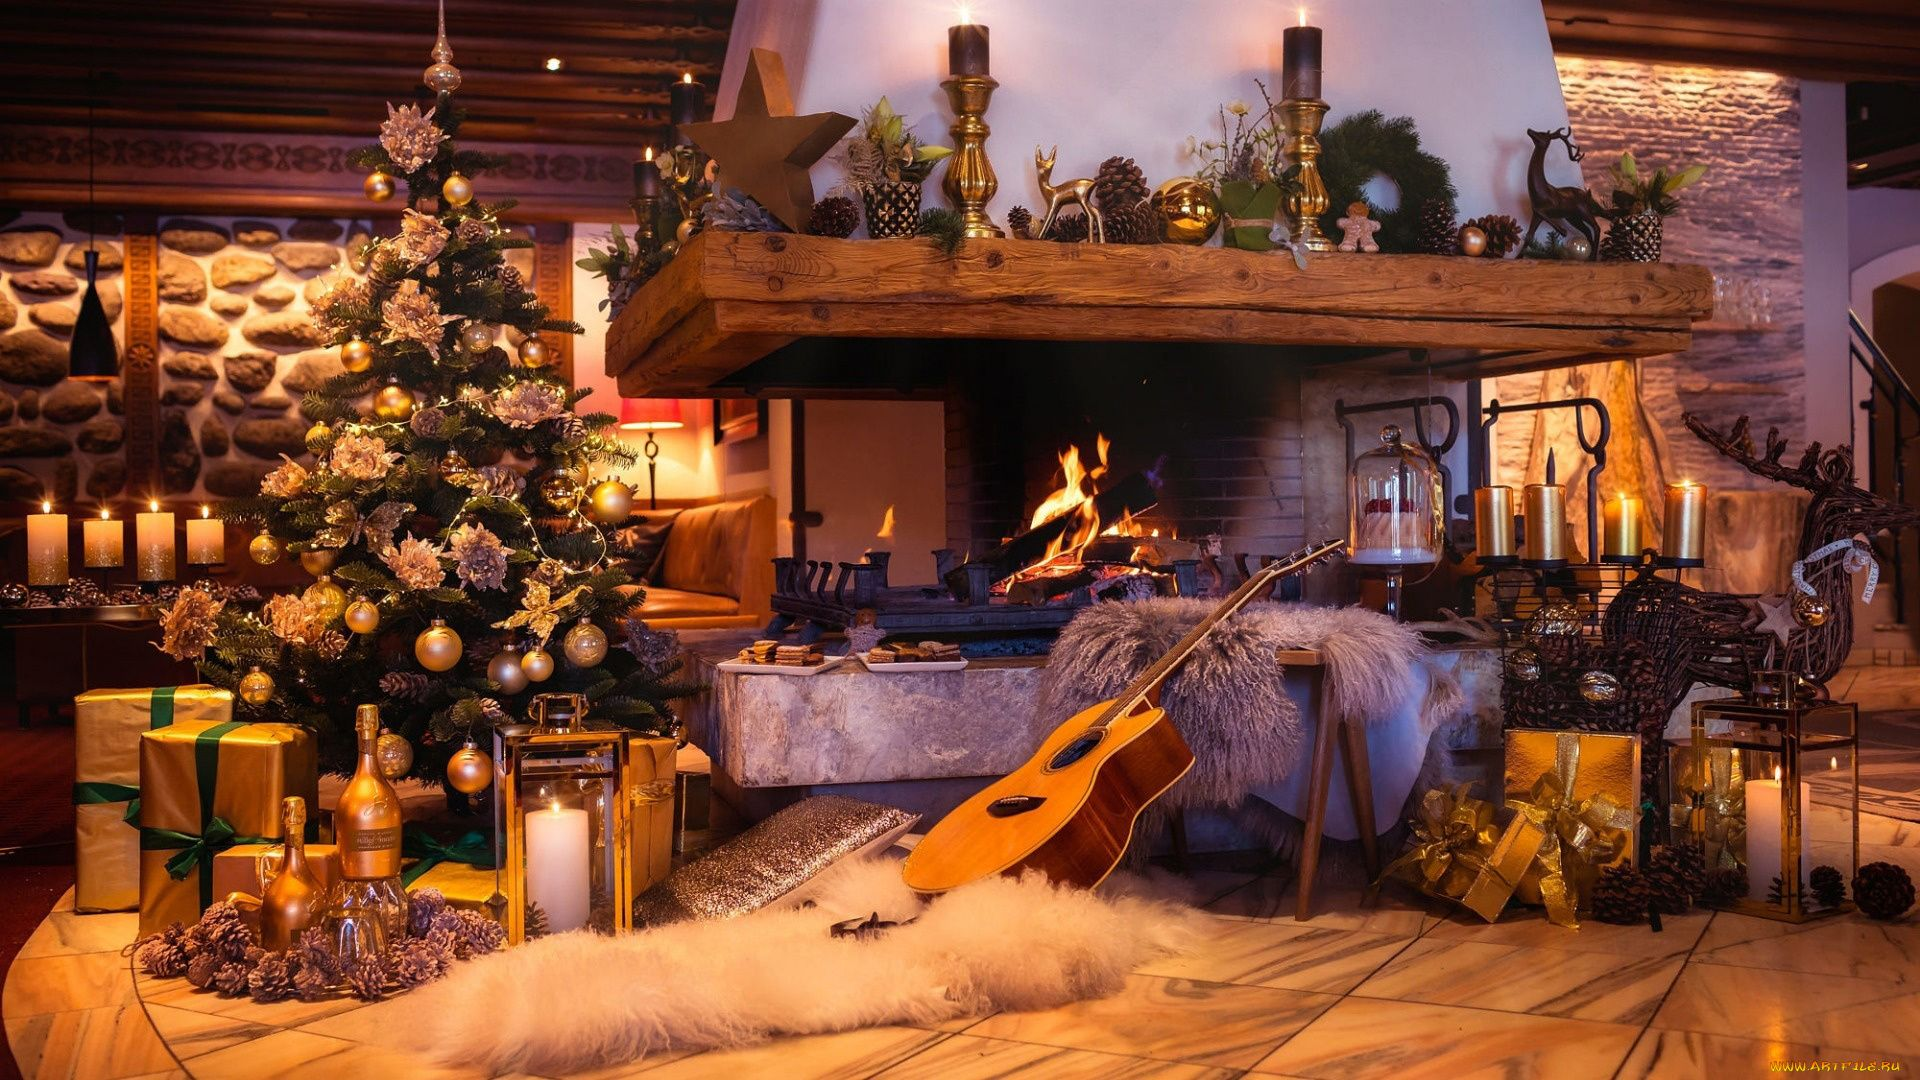 Christmas Fireplace Comfort download free wallpaper image search